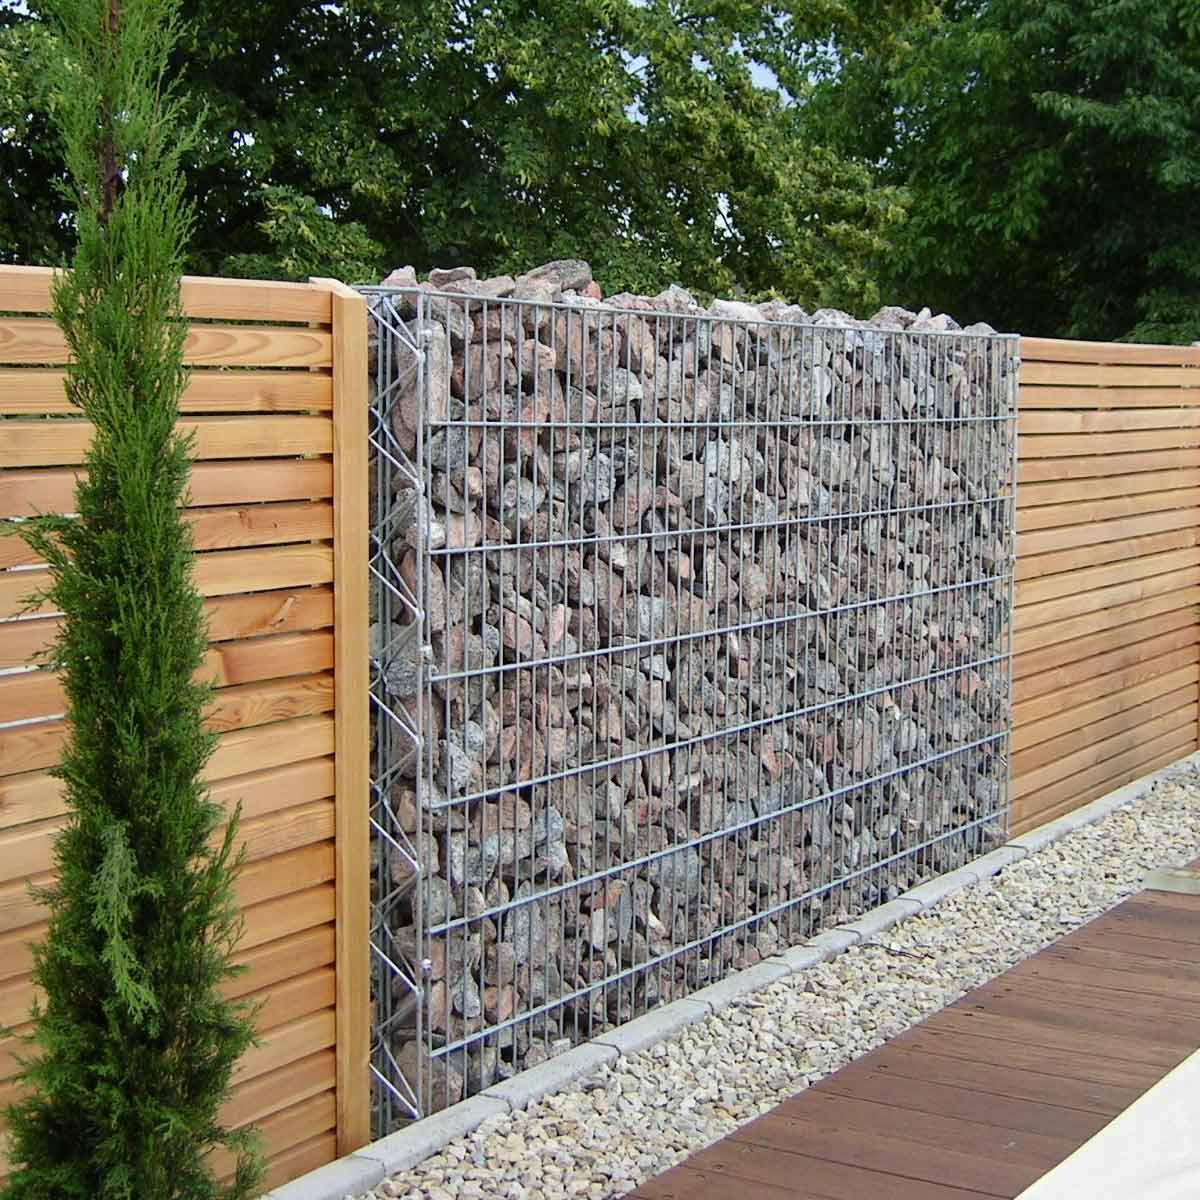 Yard Fencing 10 Modern Fence Ideas Family Handyman within Fencing Options For Backyard